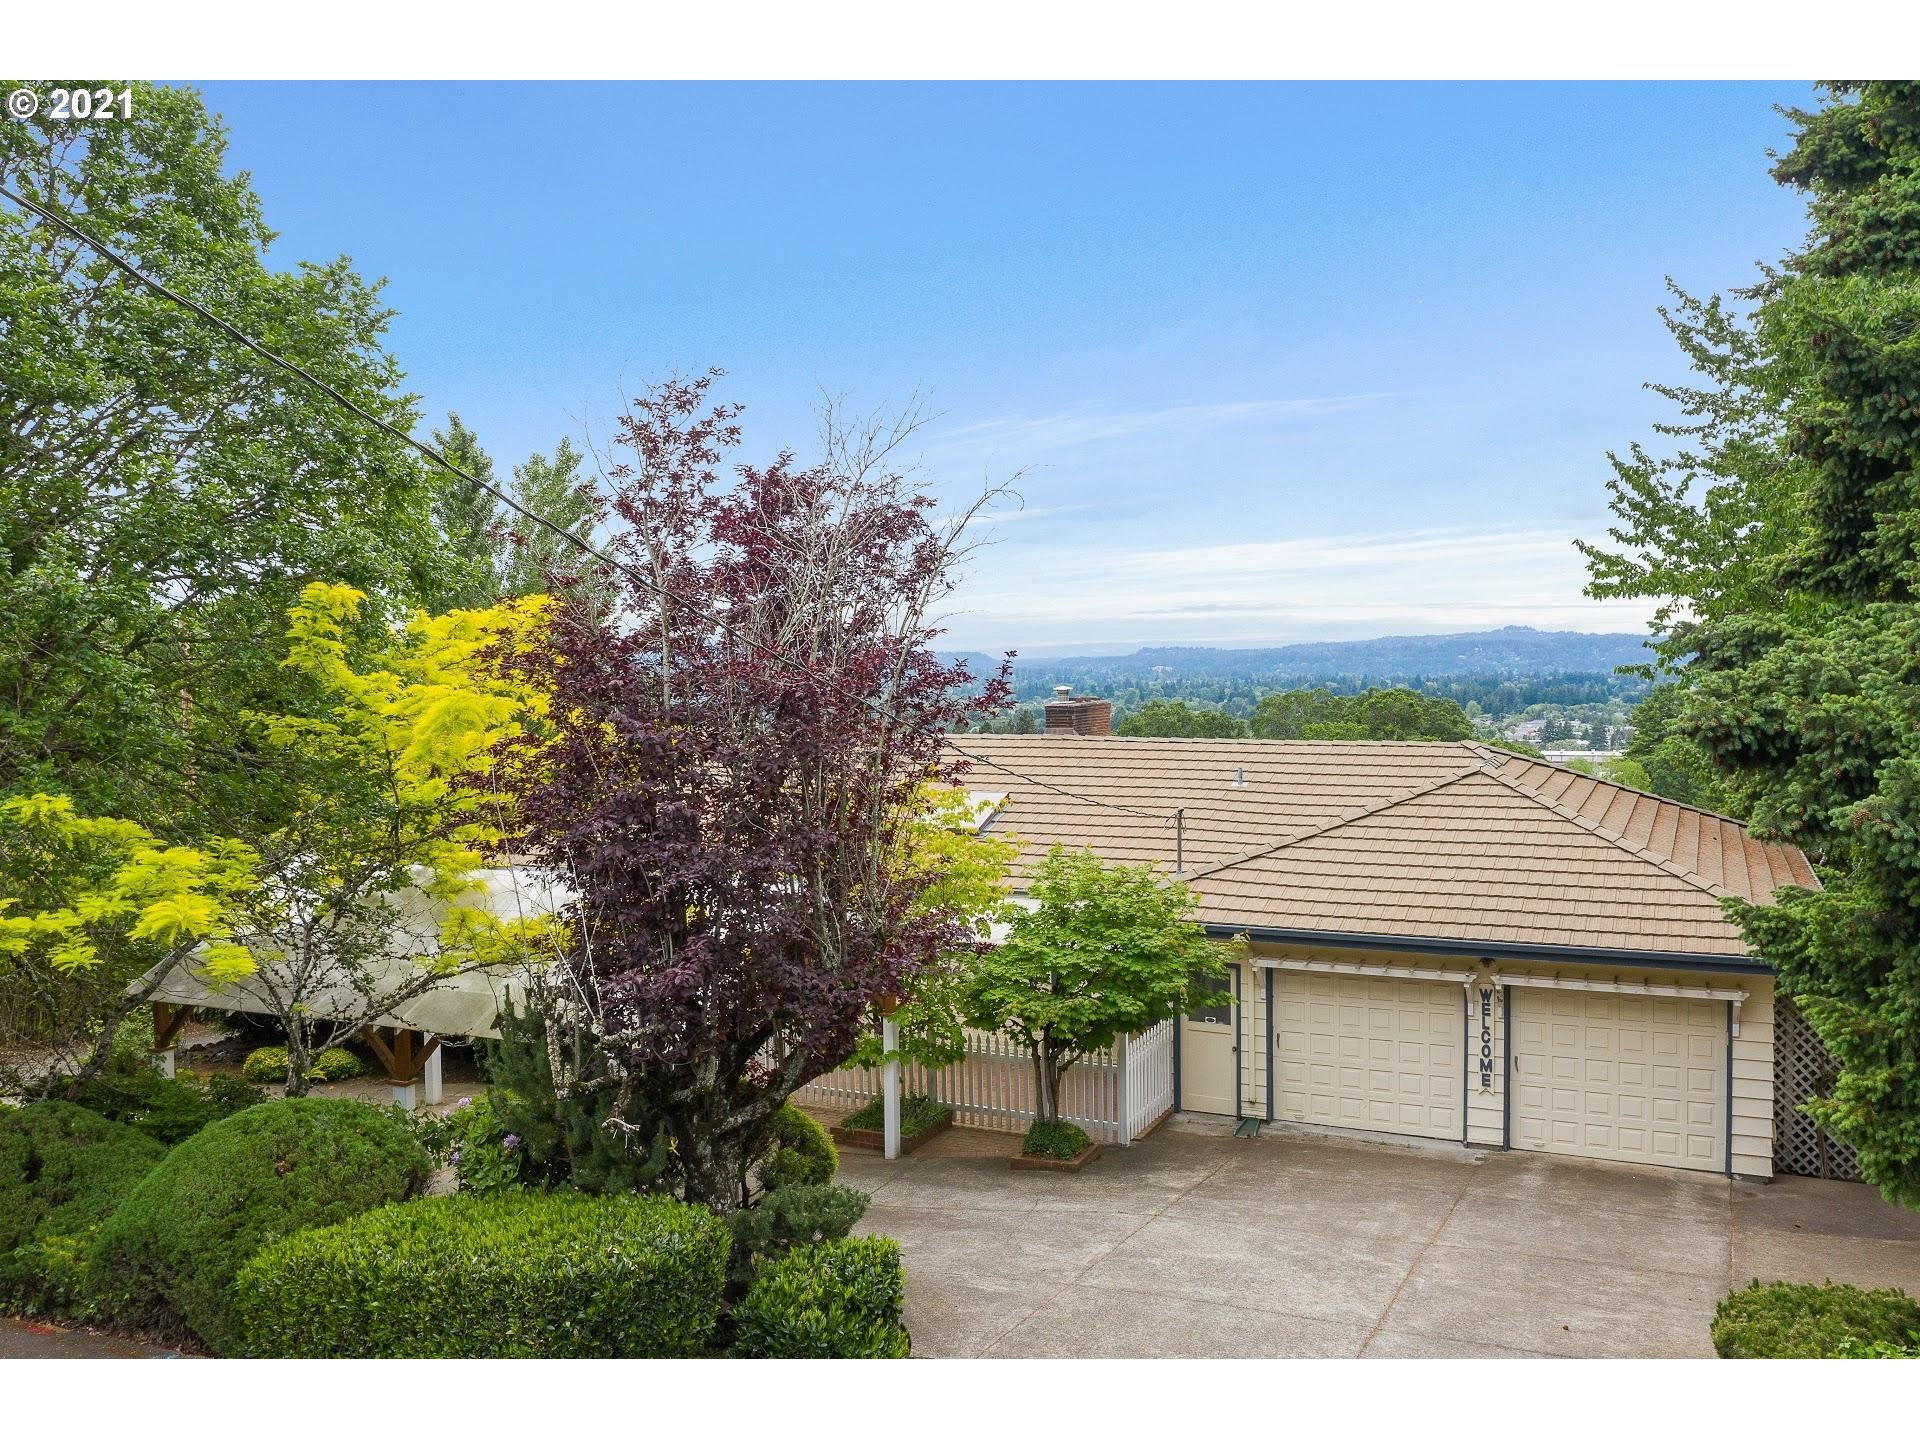 10255 SE 96TH AVE, Happy Valley, OR 97086 - MLS#: 21604288